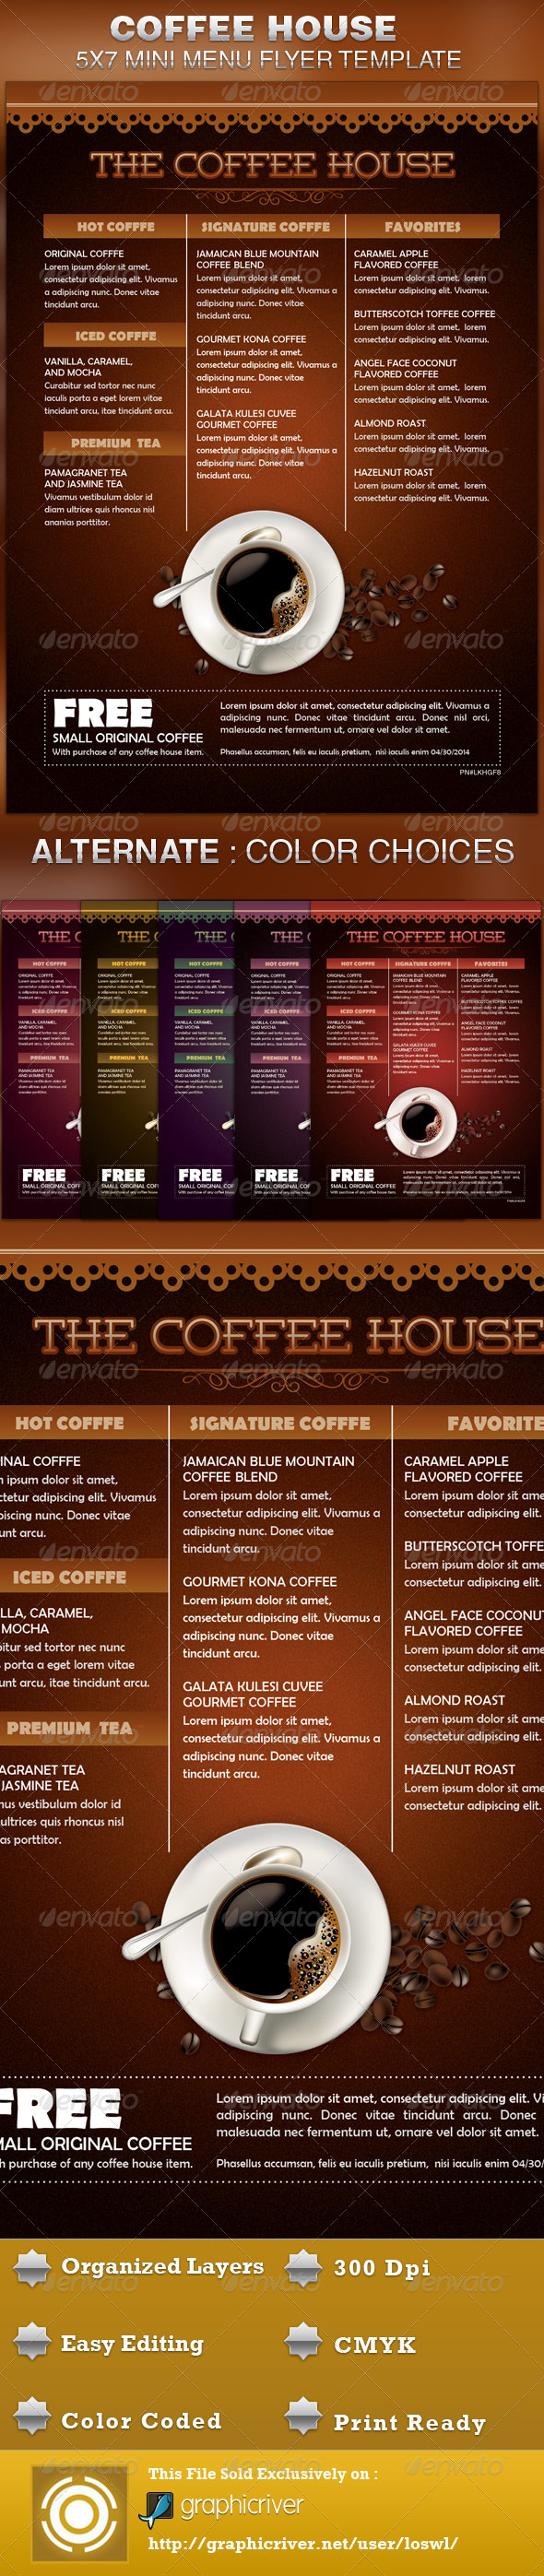 Coffee House Mini Menu Flyer Template - Restaurant Flyers